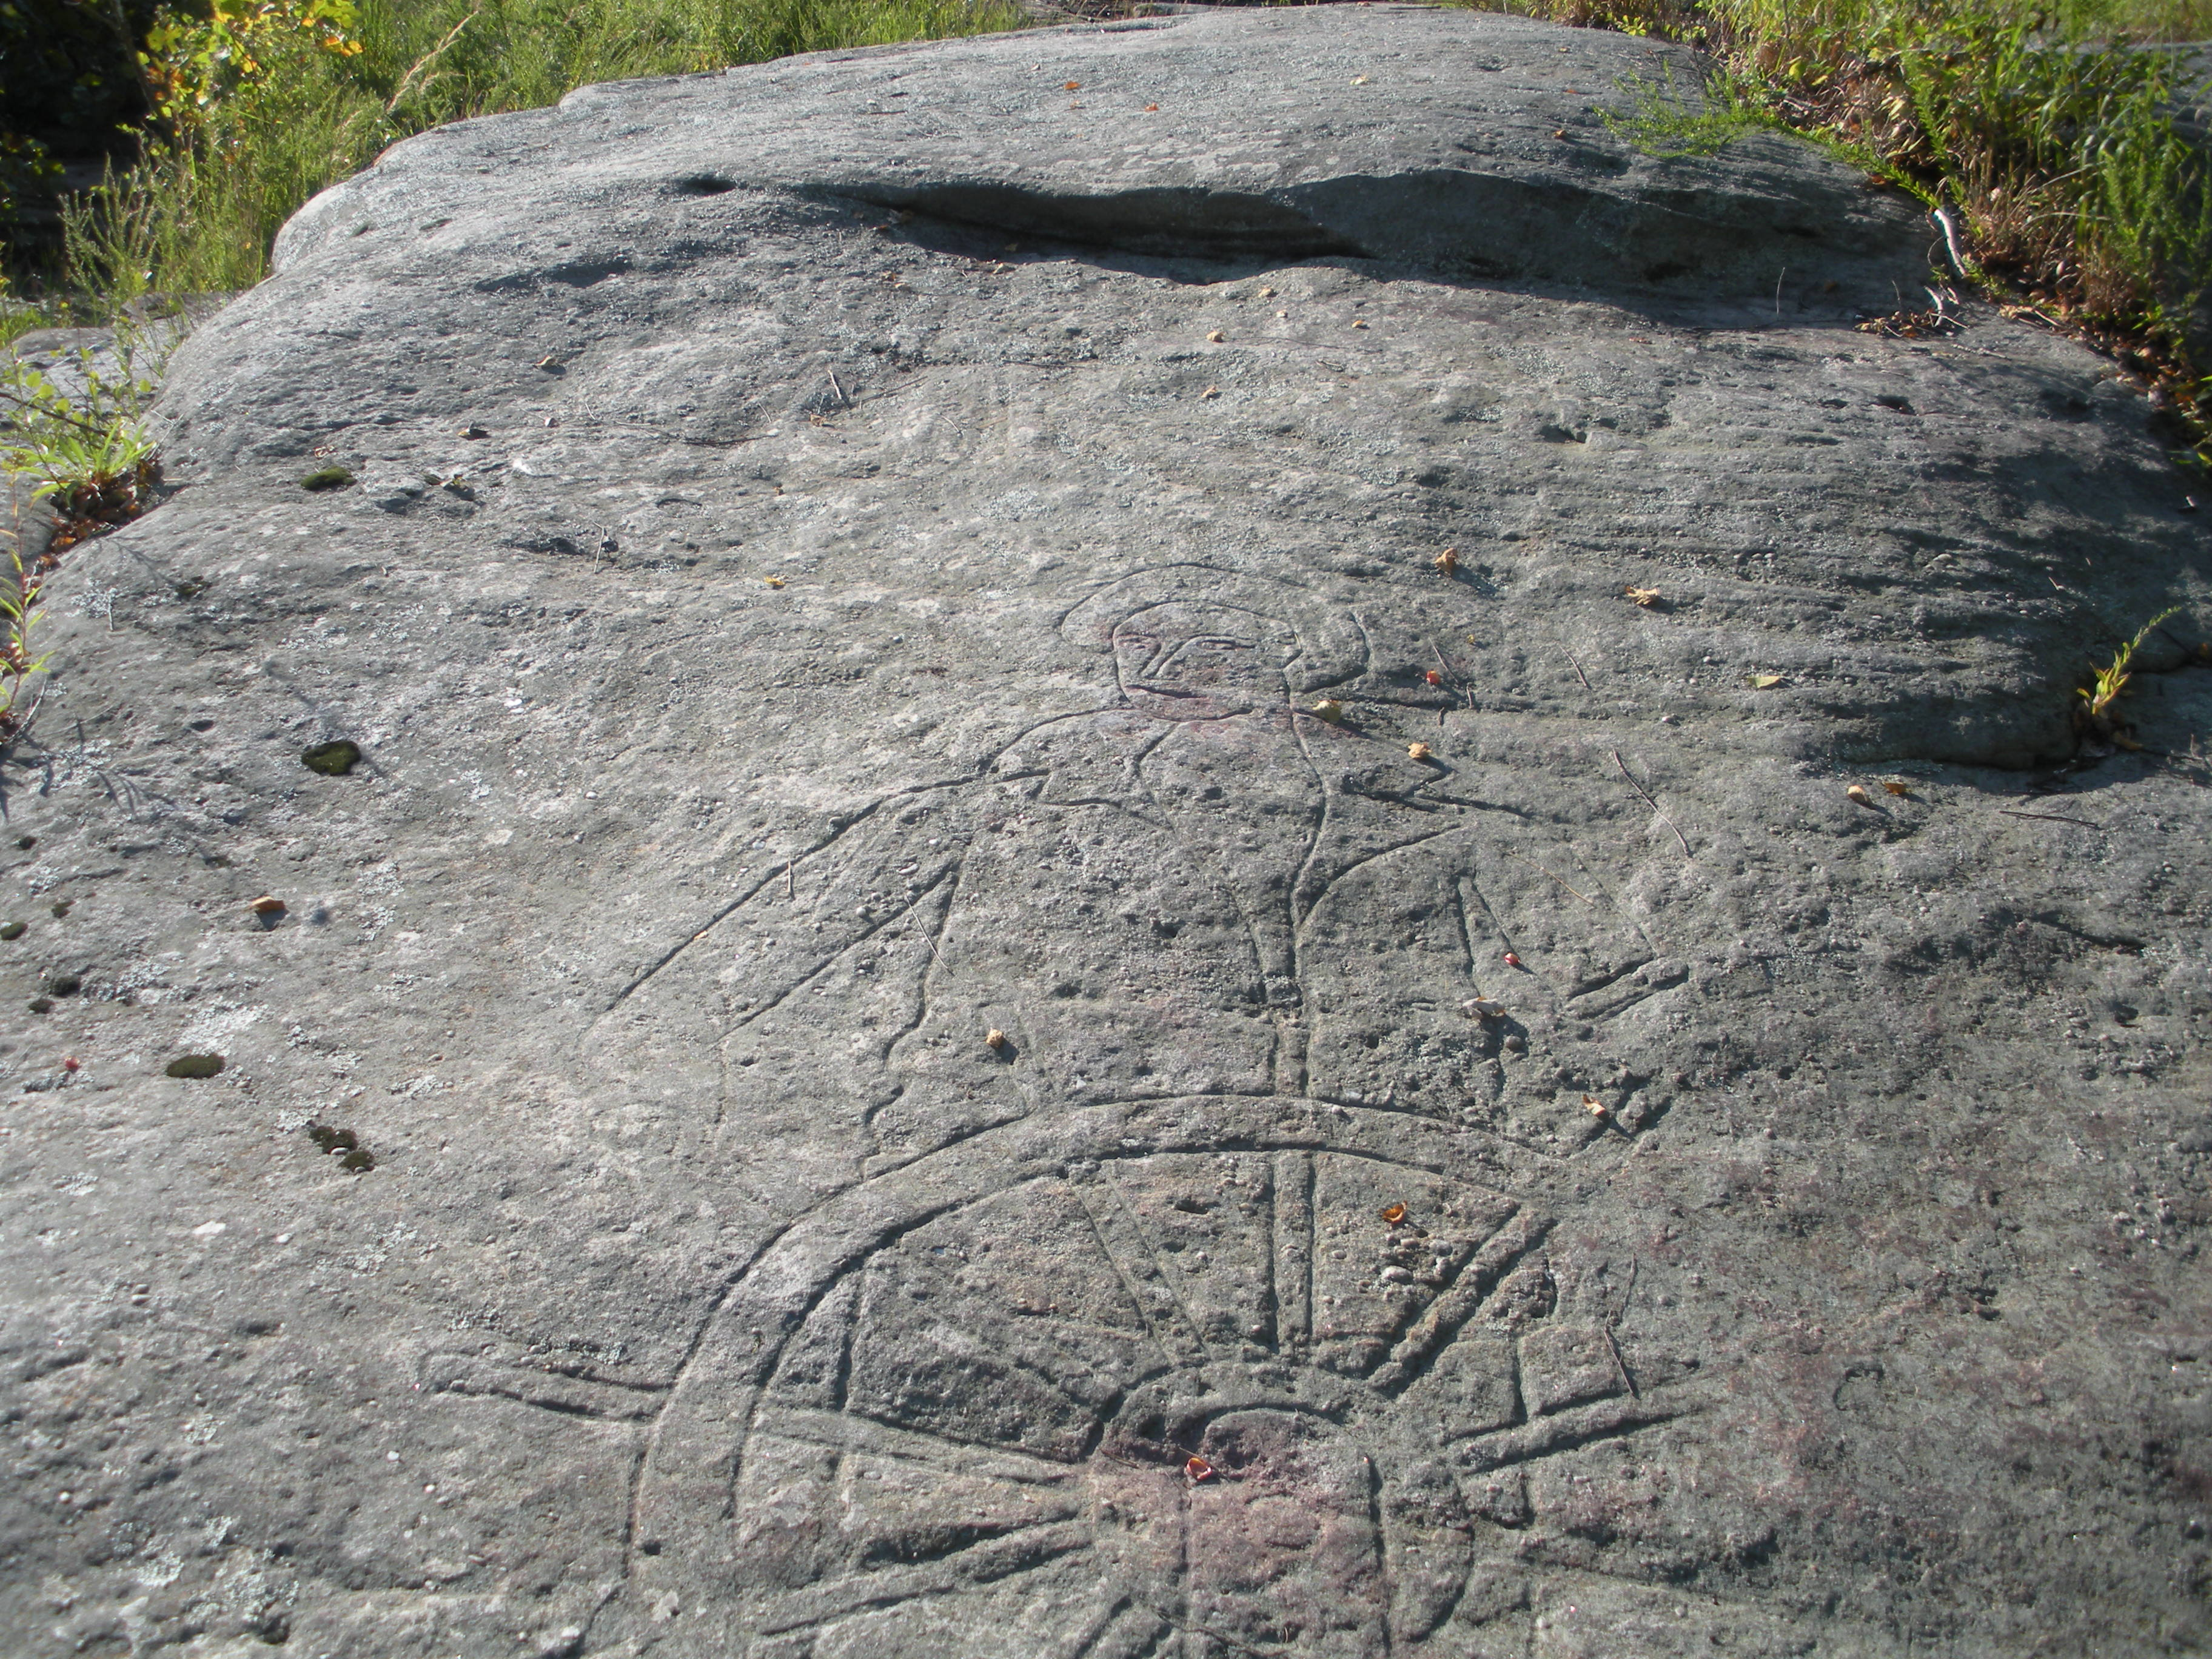 Rock carvings on the new river smoothingit